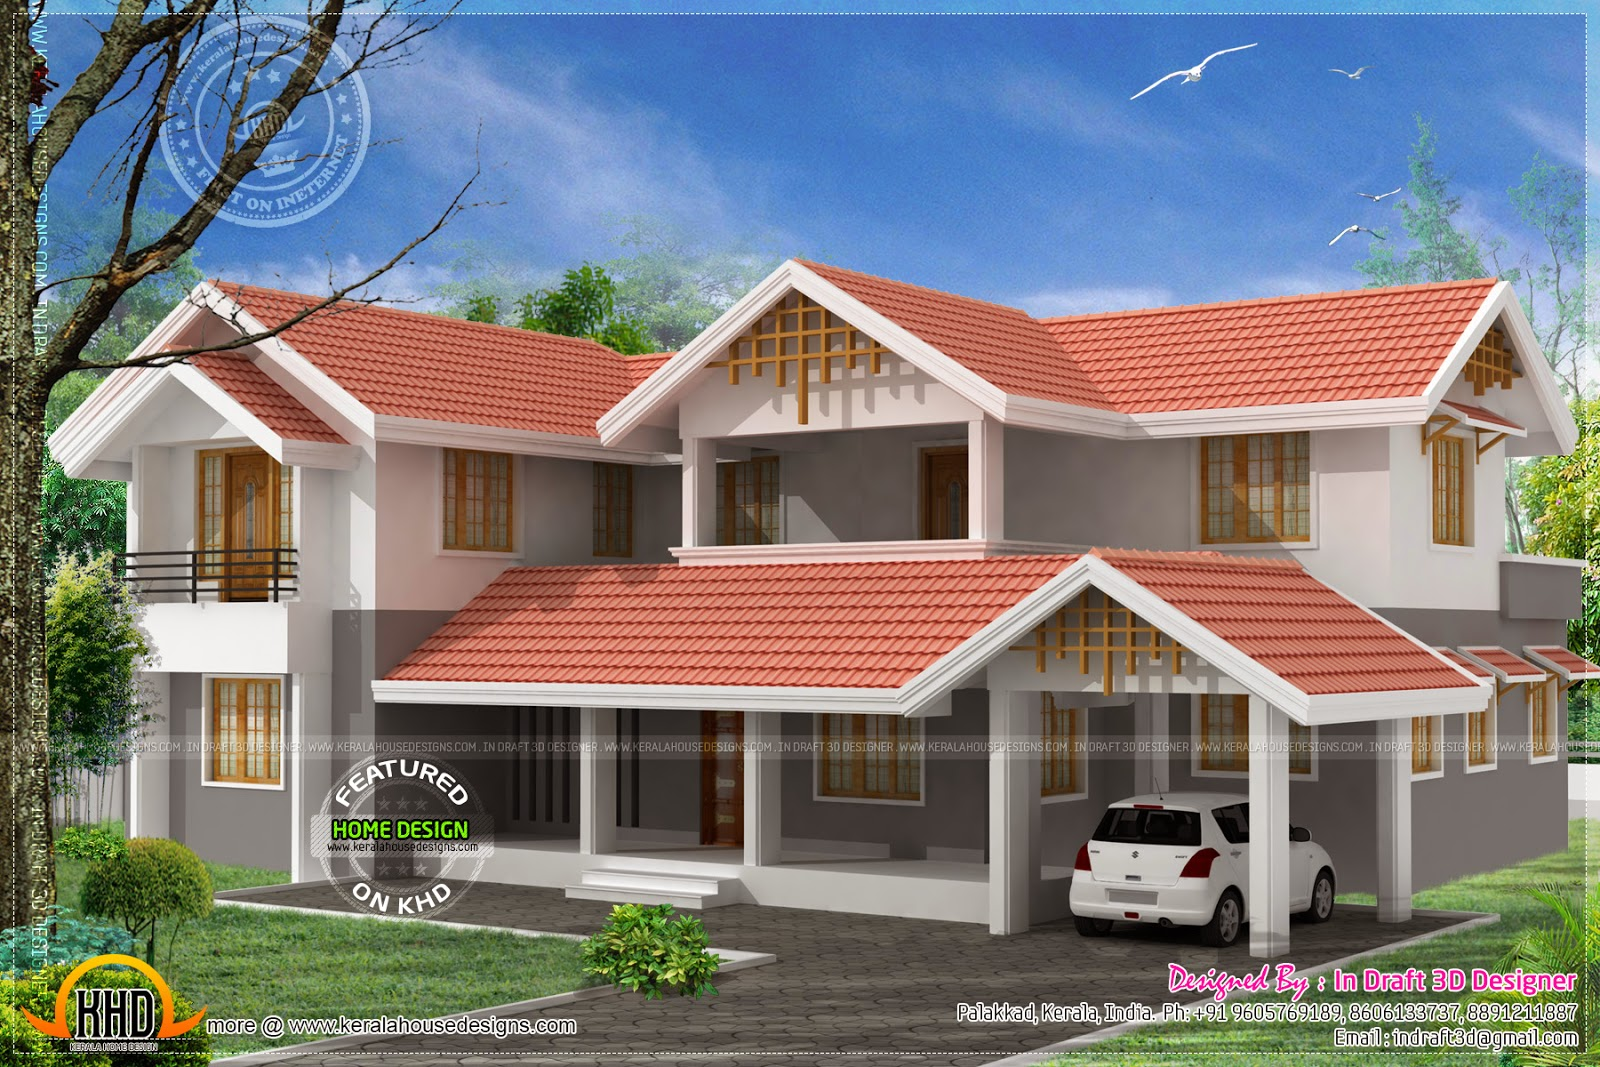 3d home design in 2860 sq feet kerala home design and floor plans Home designer 3d